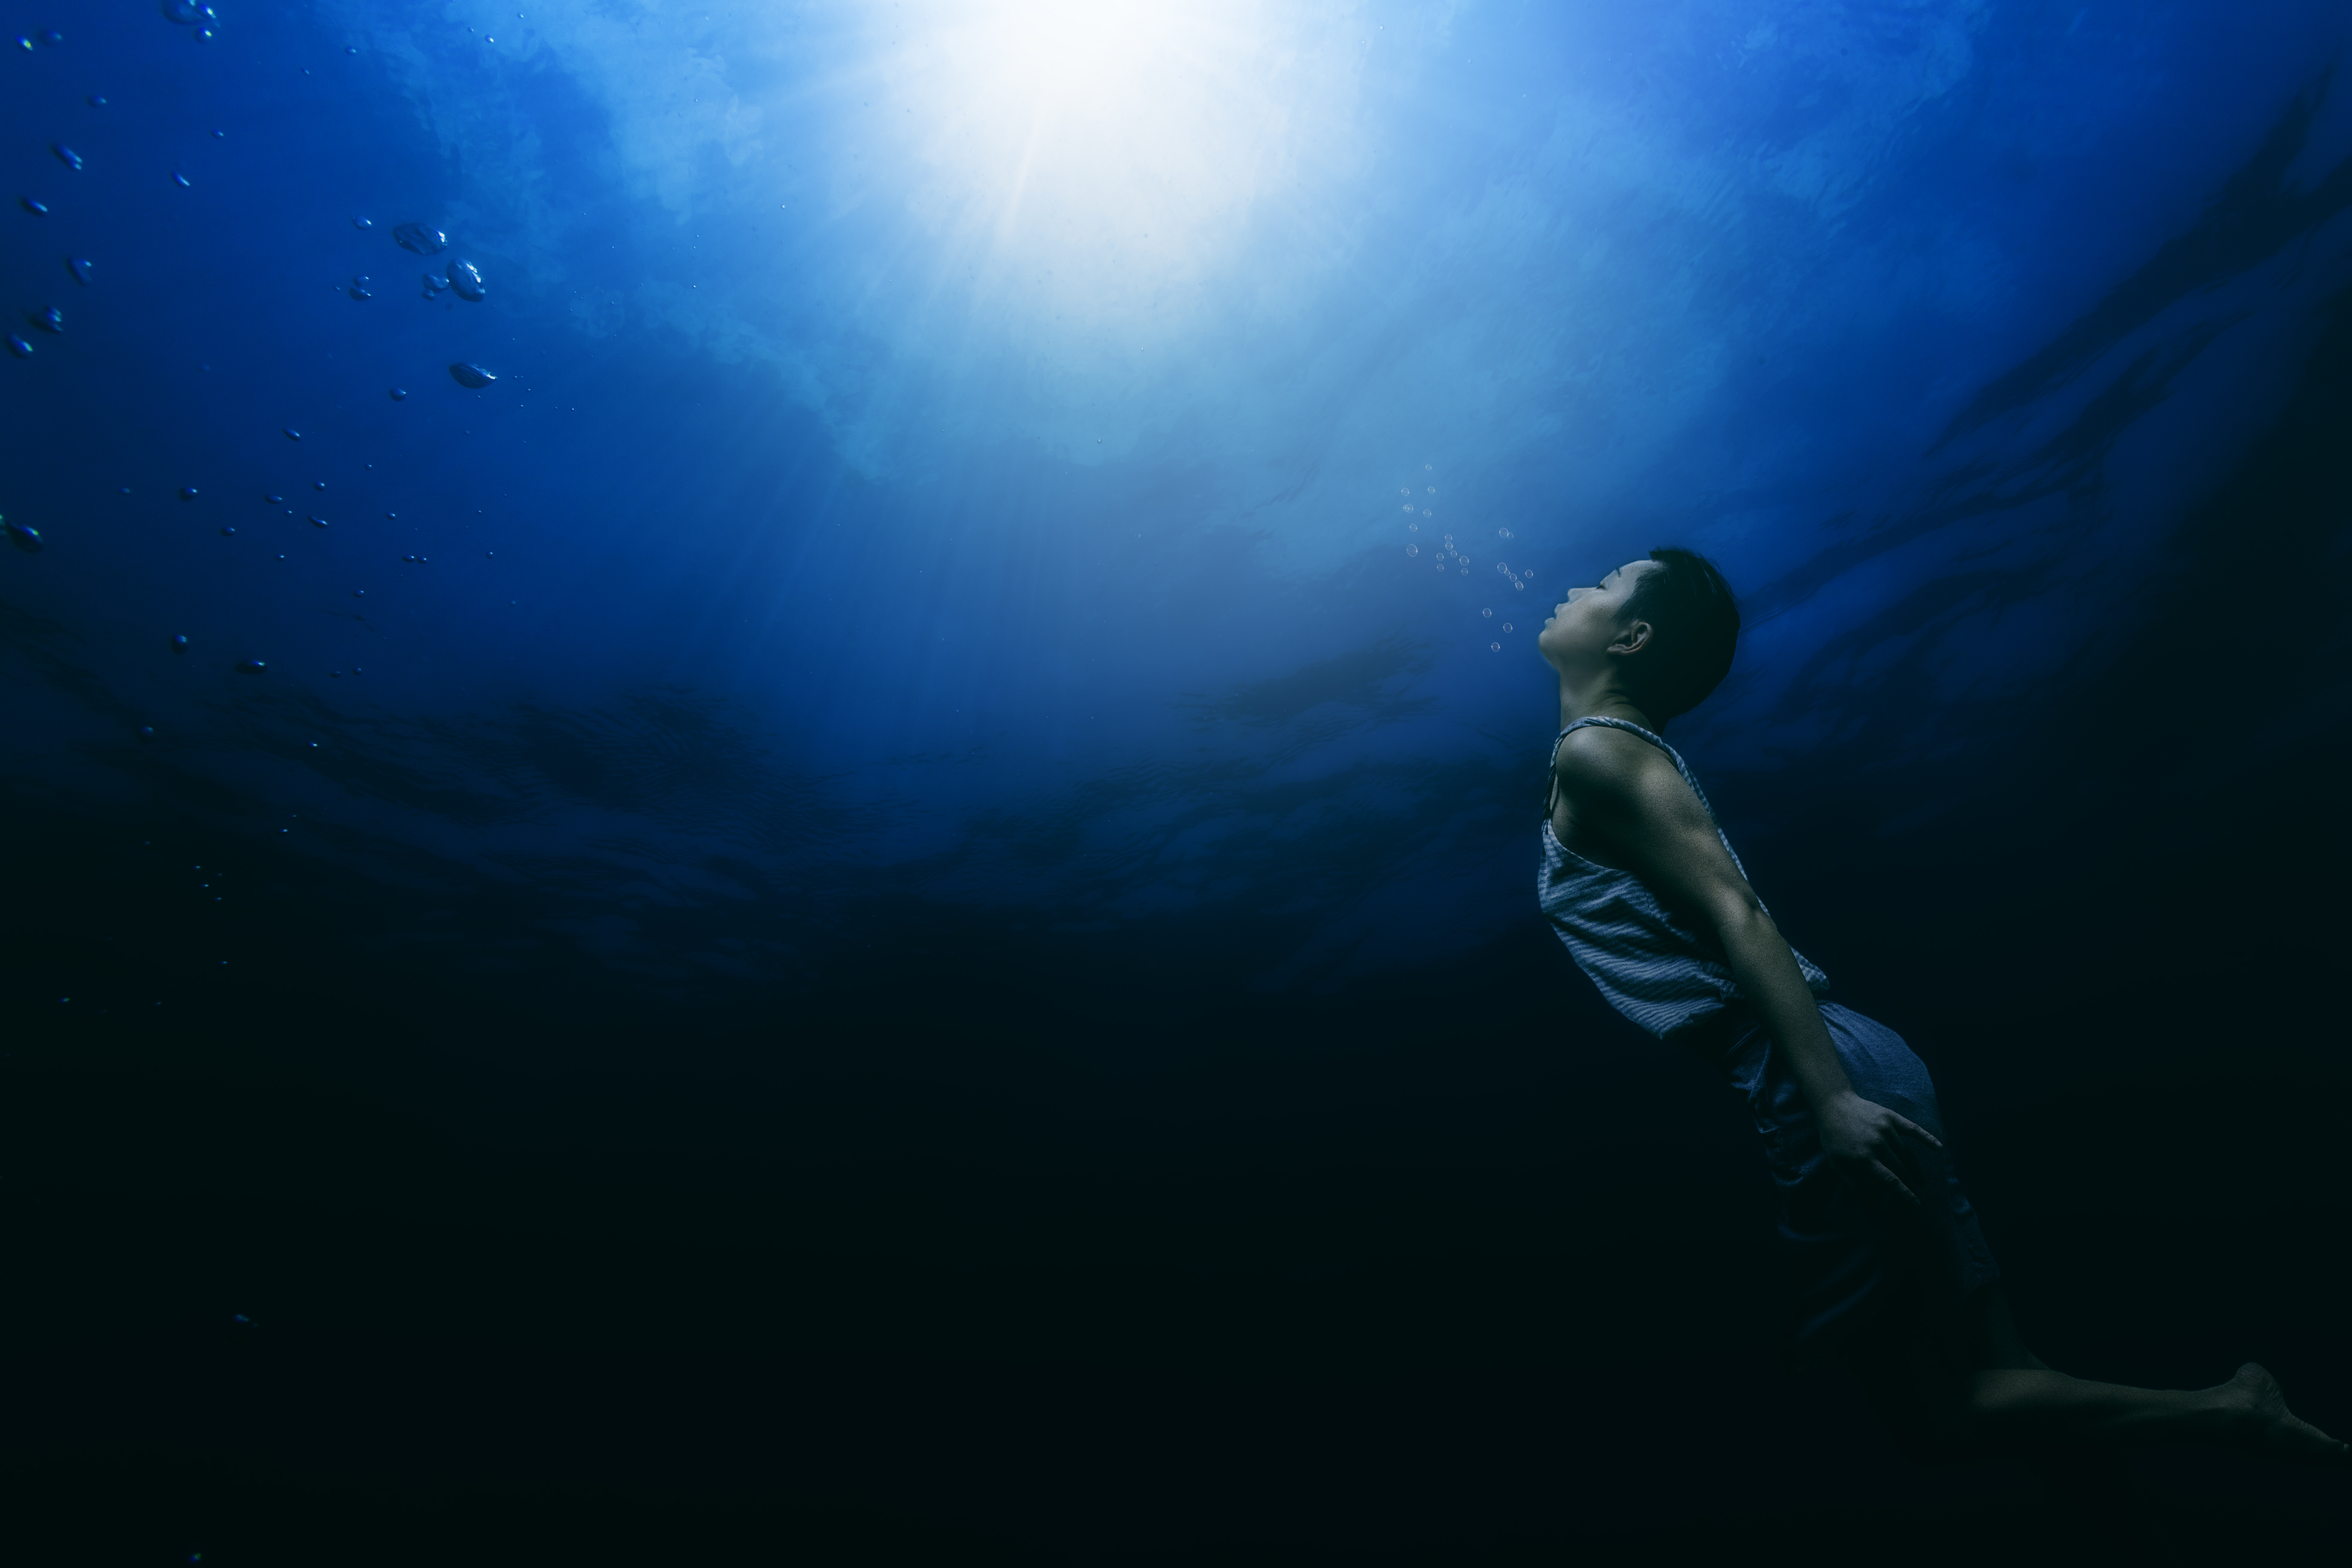 Falling Water Wallpaper Painting Of A Person Swimming Underwater 183 Free Stock Photo